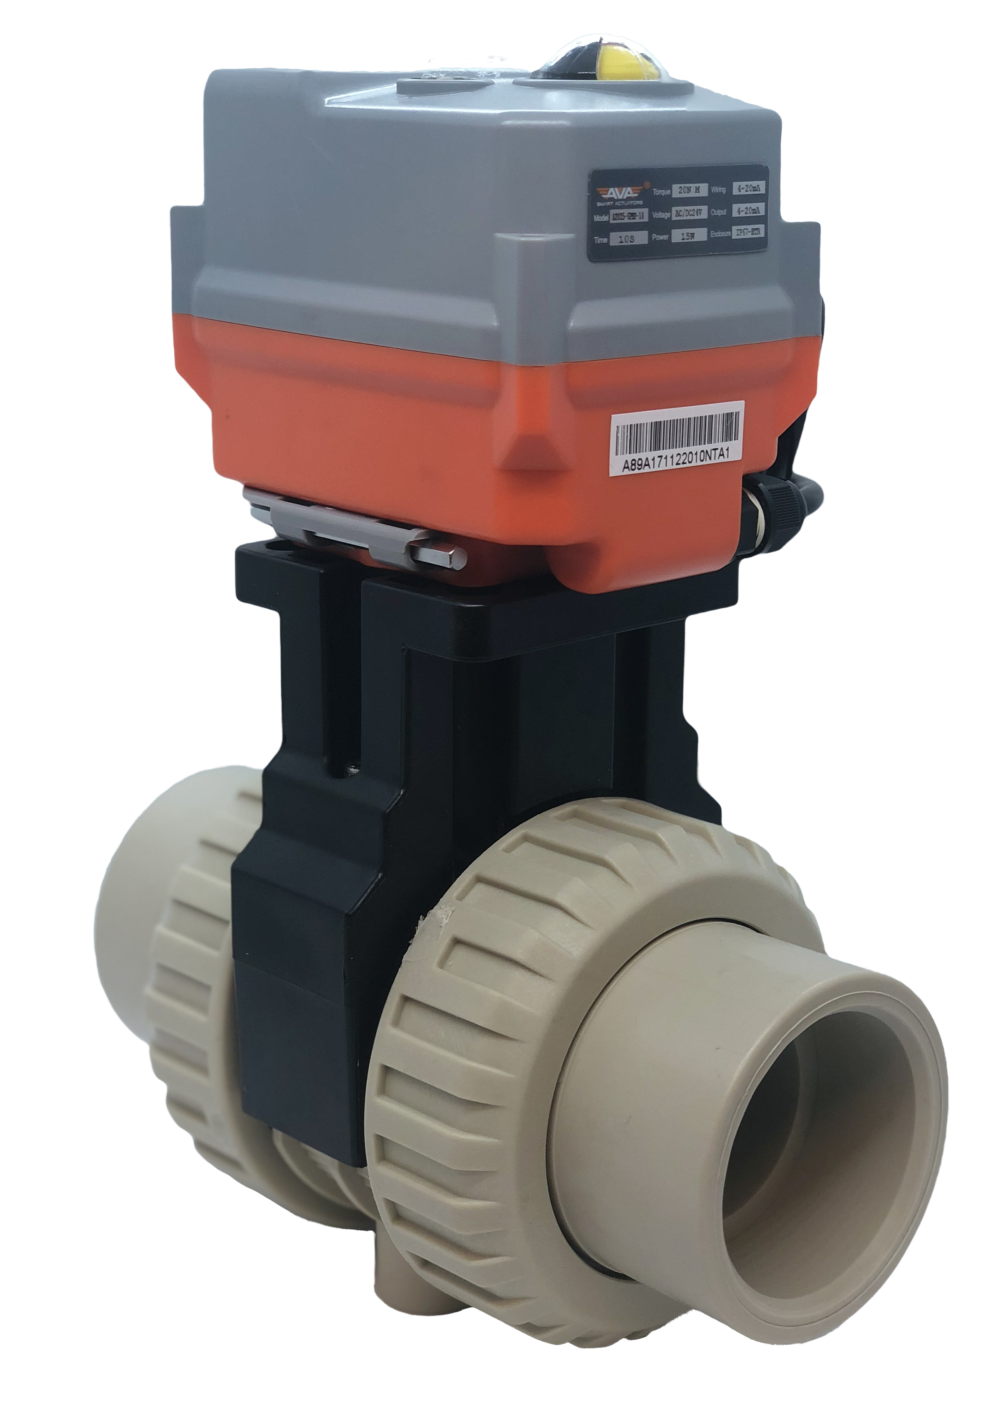 Cepex Extreme Motorized PP-H Ball Valve with AVA Electric Actuator from AVS